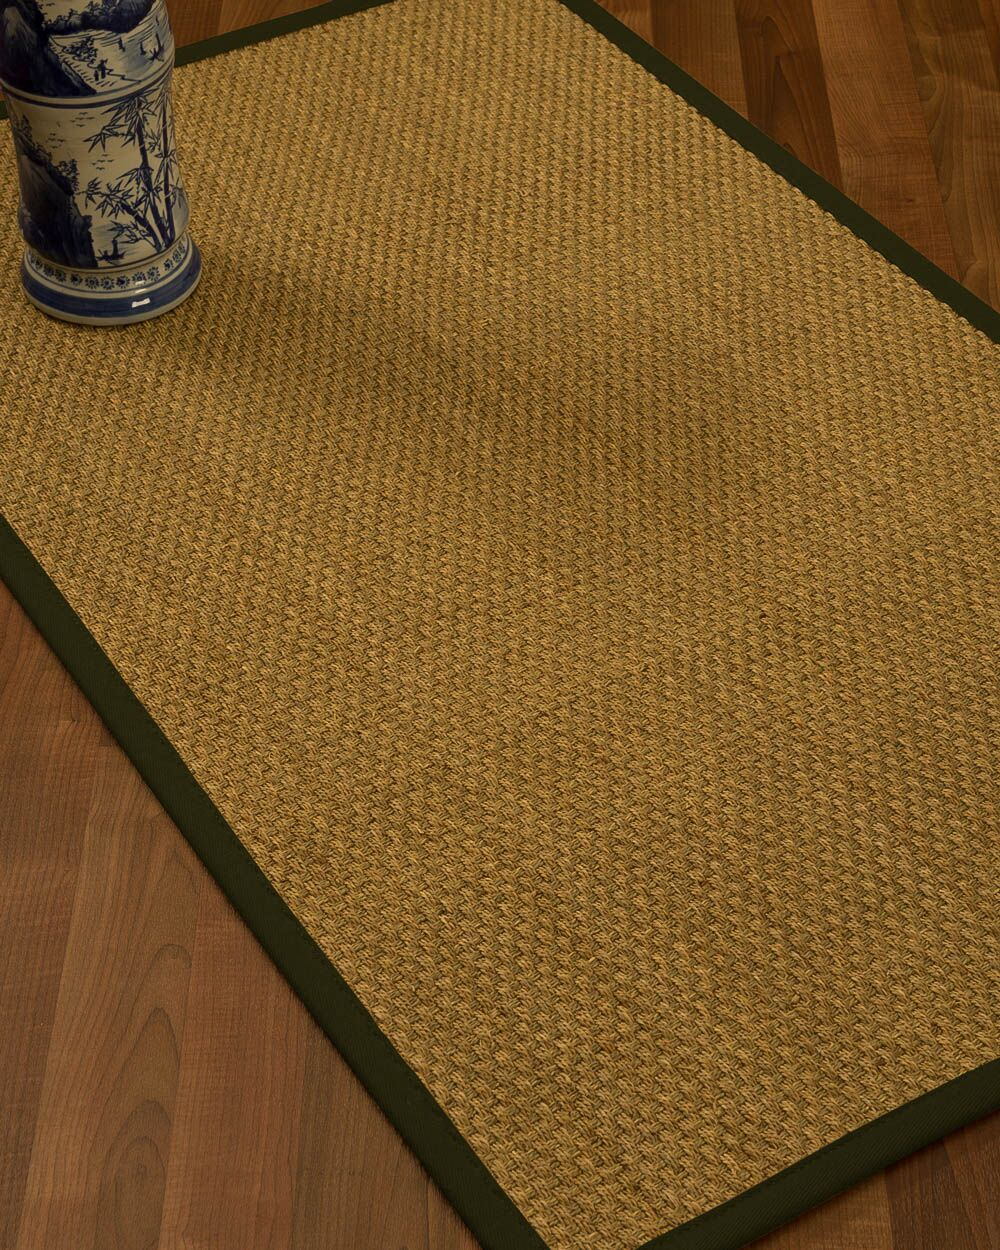 Rosabel Border Hand-Woven Beige/Moss Area Rug Rug Pad Included: No, Rug Size: Rectangle 3' x 5'